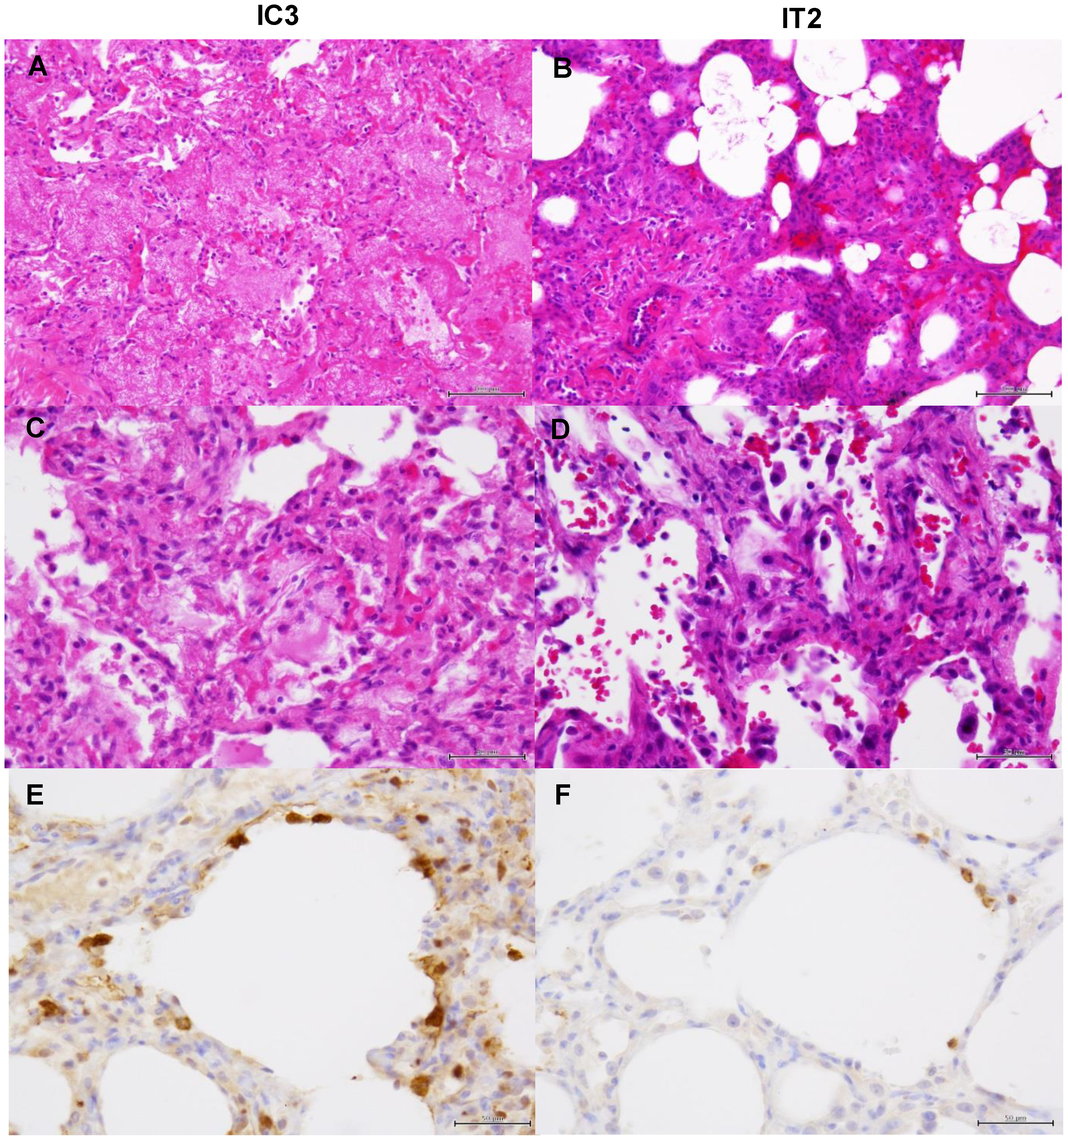 Histological analysis of pneumonia and distribution of viral antigens in immunosuppressed macaques infected with VN3040.